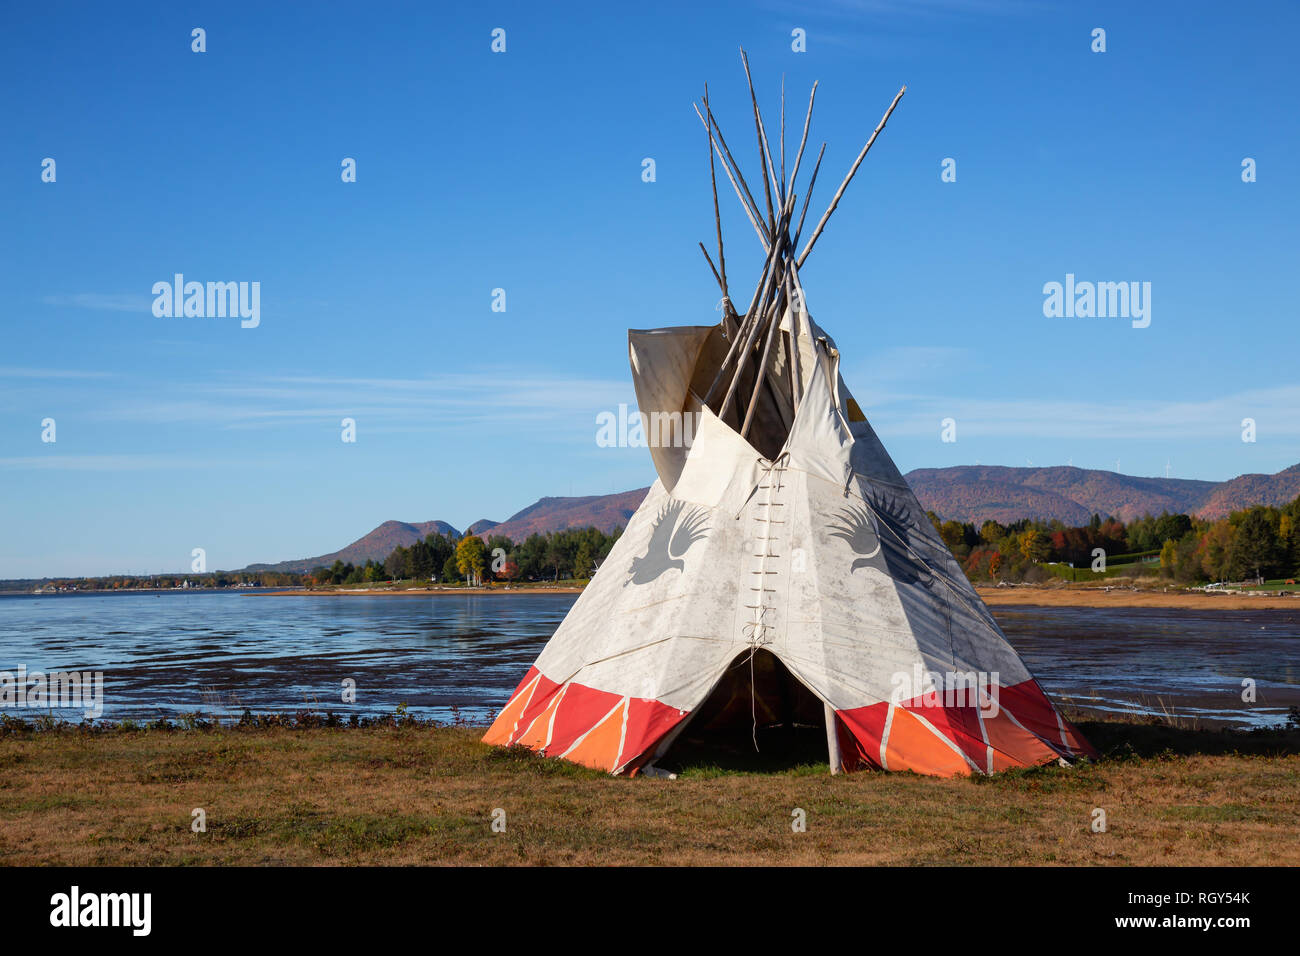 Gesgapegiag, Quebec, Canada - October 5, 2018: North American Indians Teepee near the Atlantic Ocean shore during a vibrant sunny day. - Stock Image